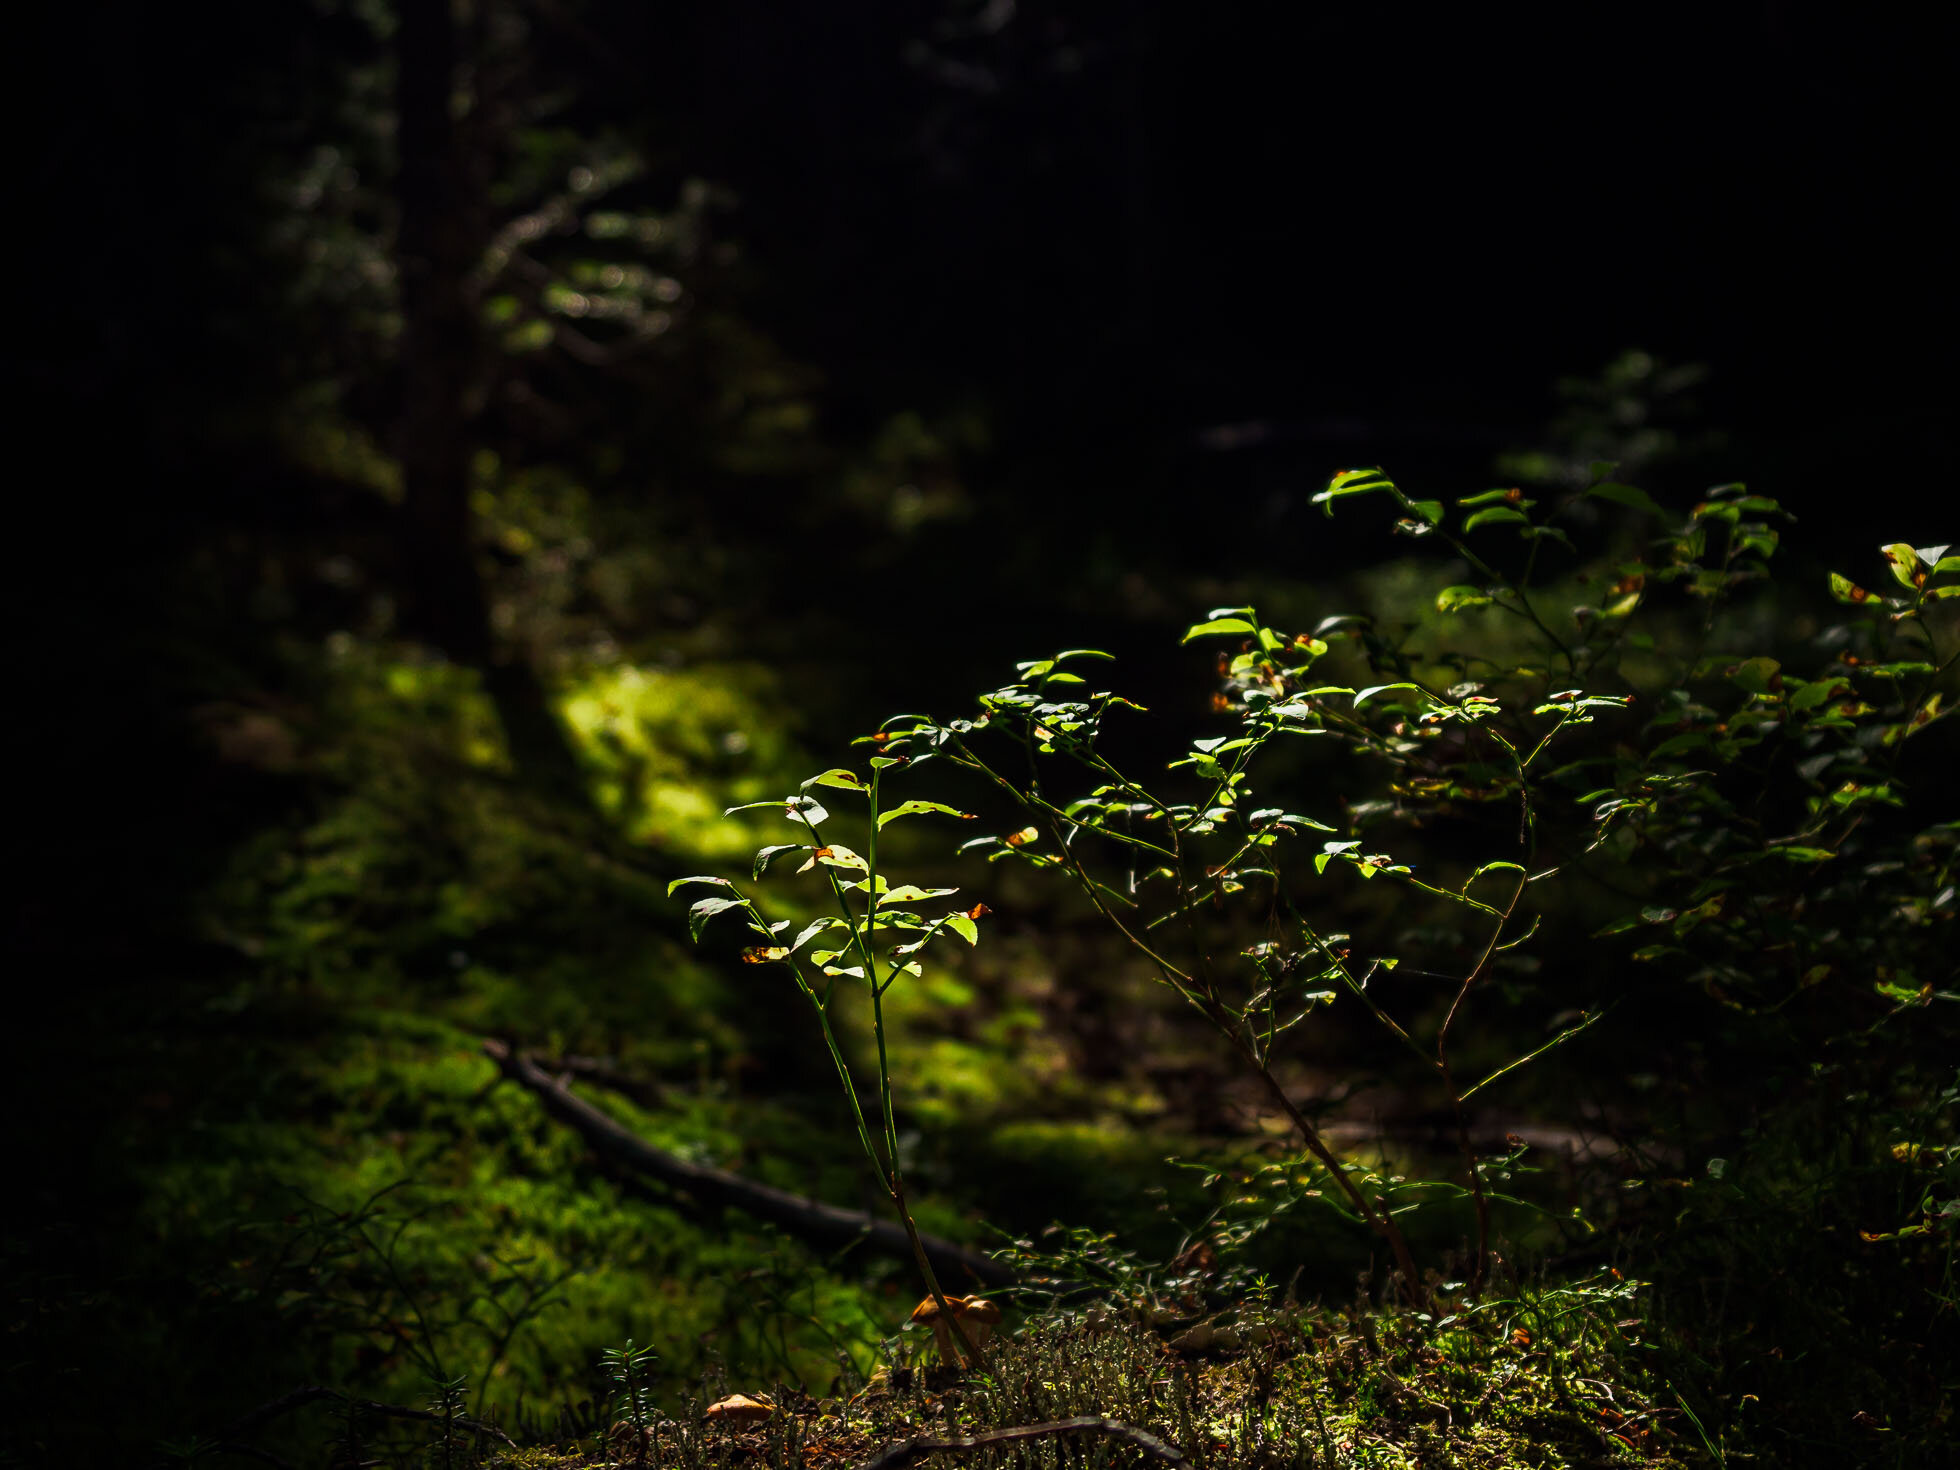 Amazing filtered light and foliage in the forest